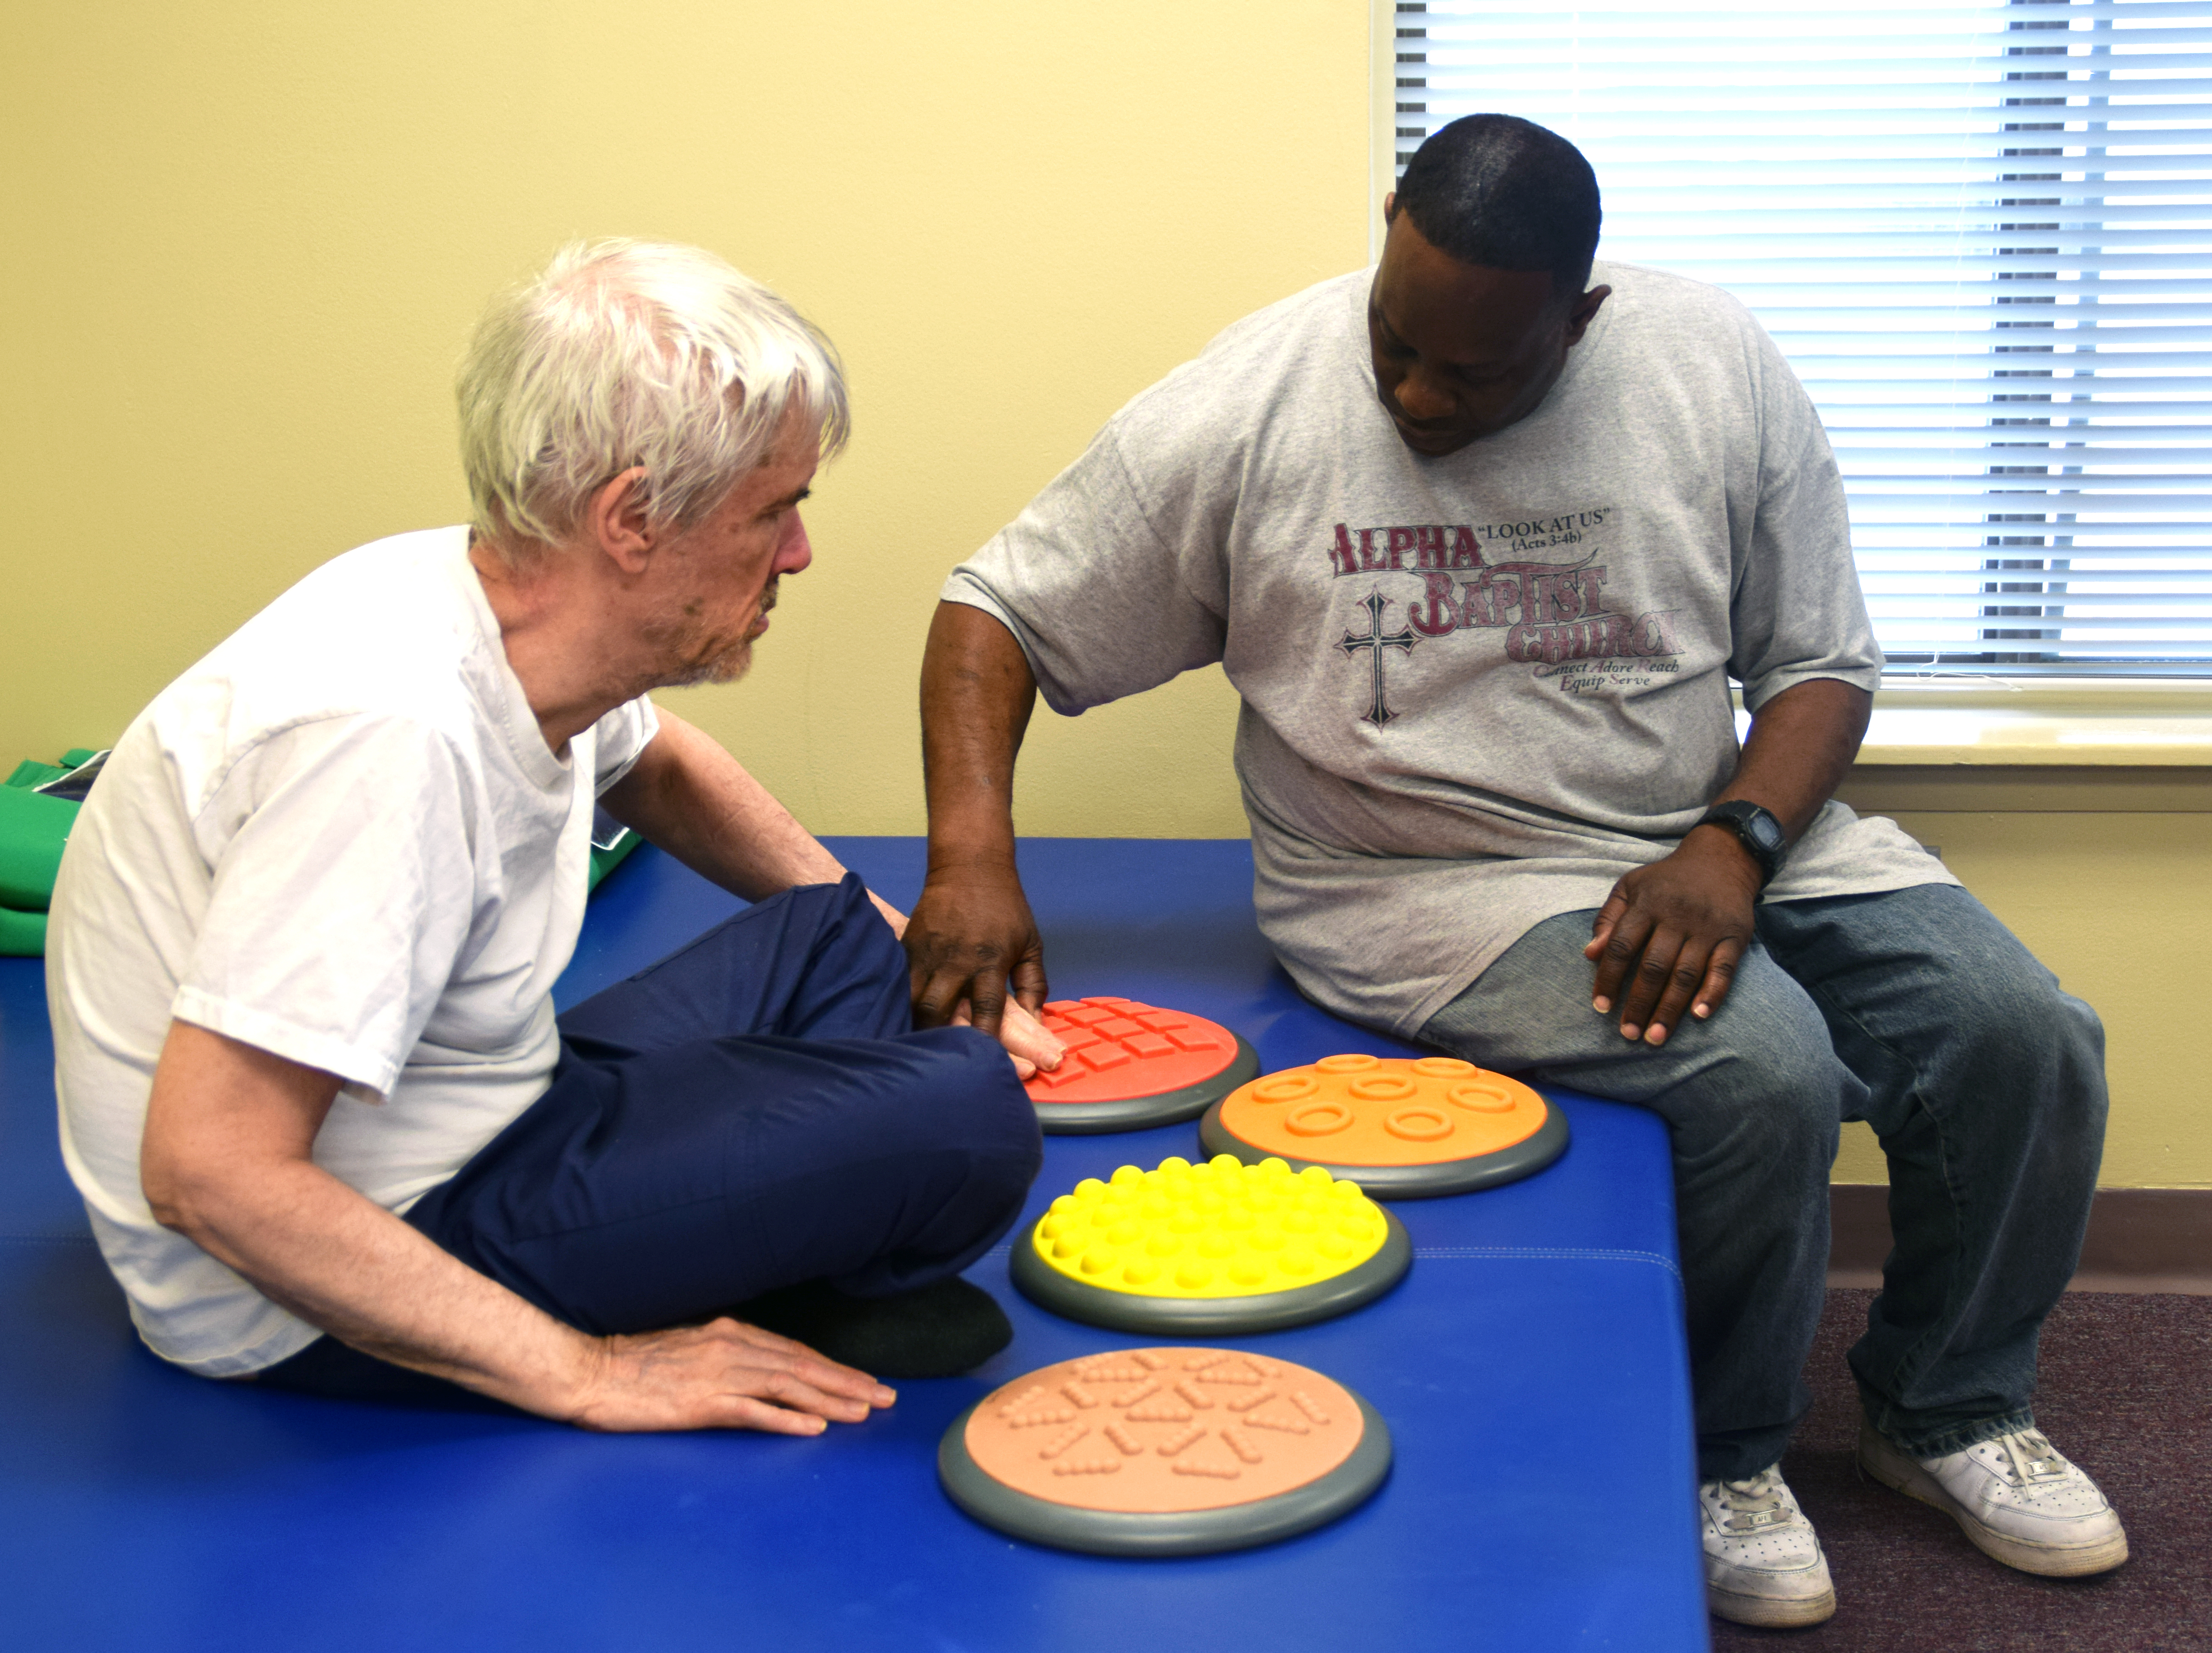 A staff member works with a client on sensory integration